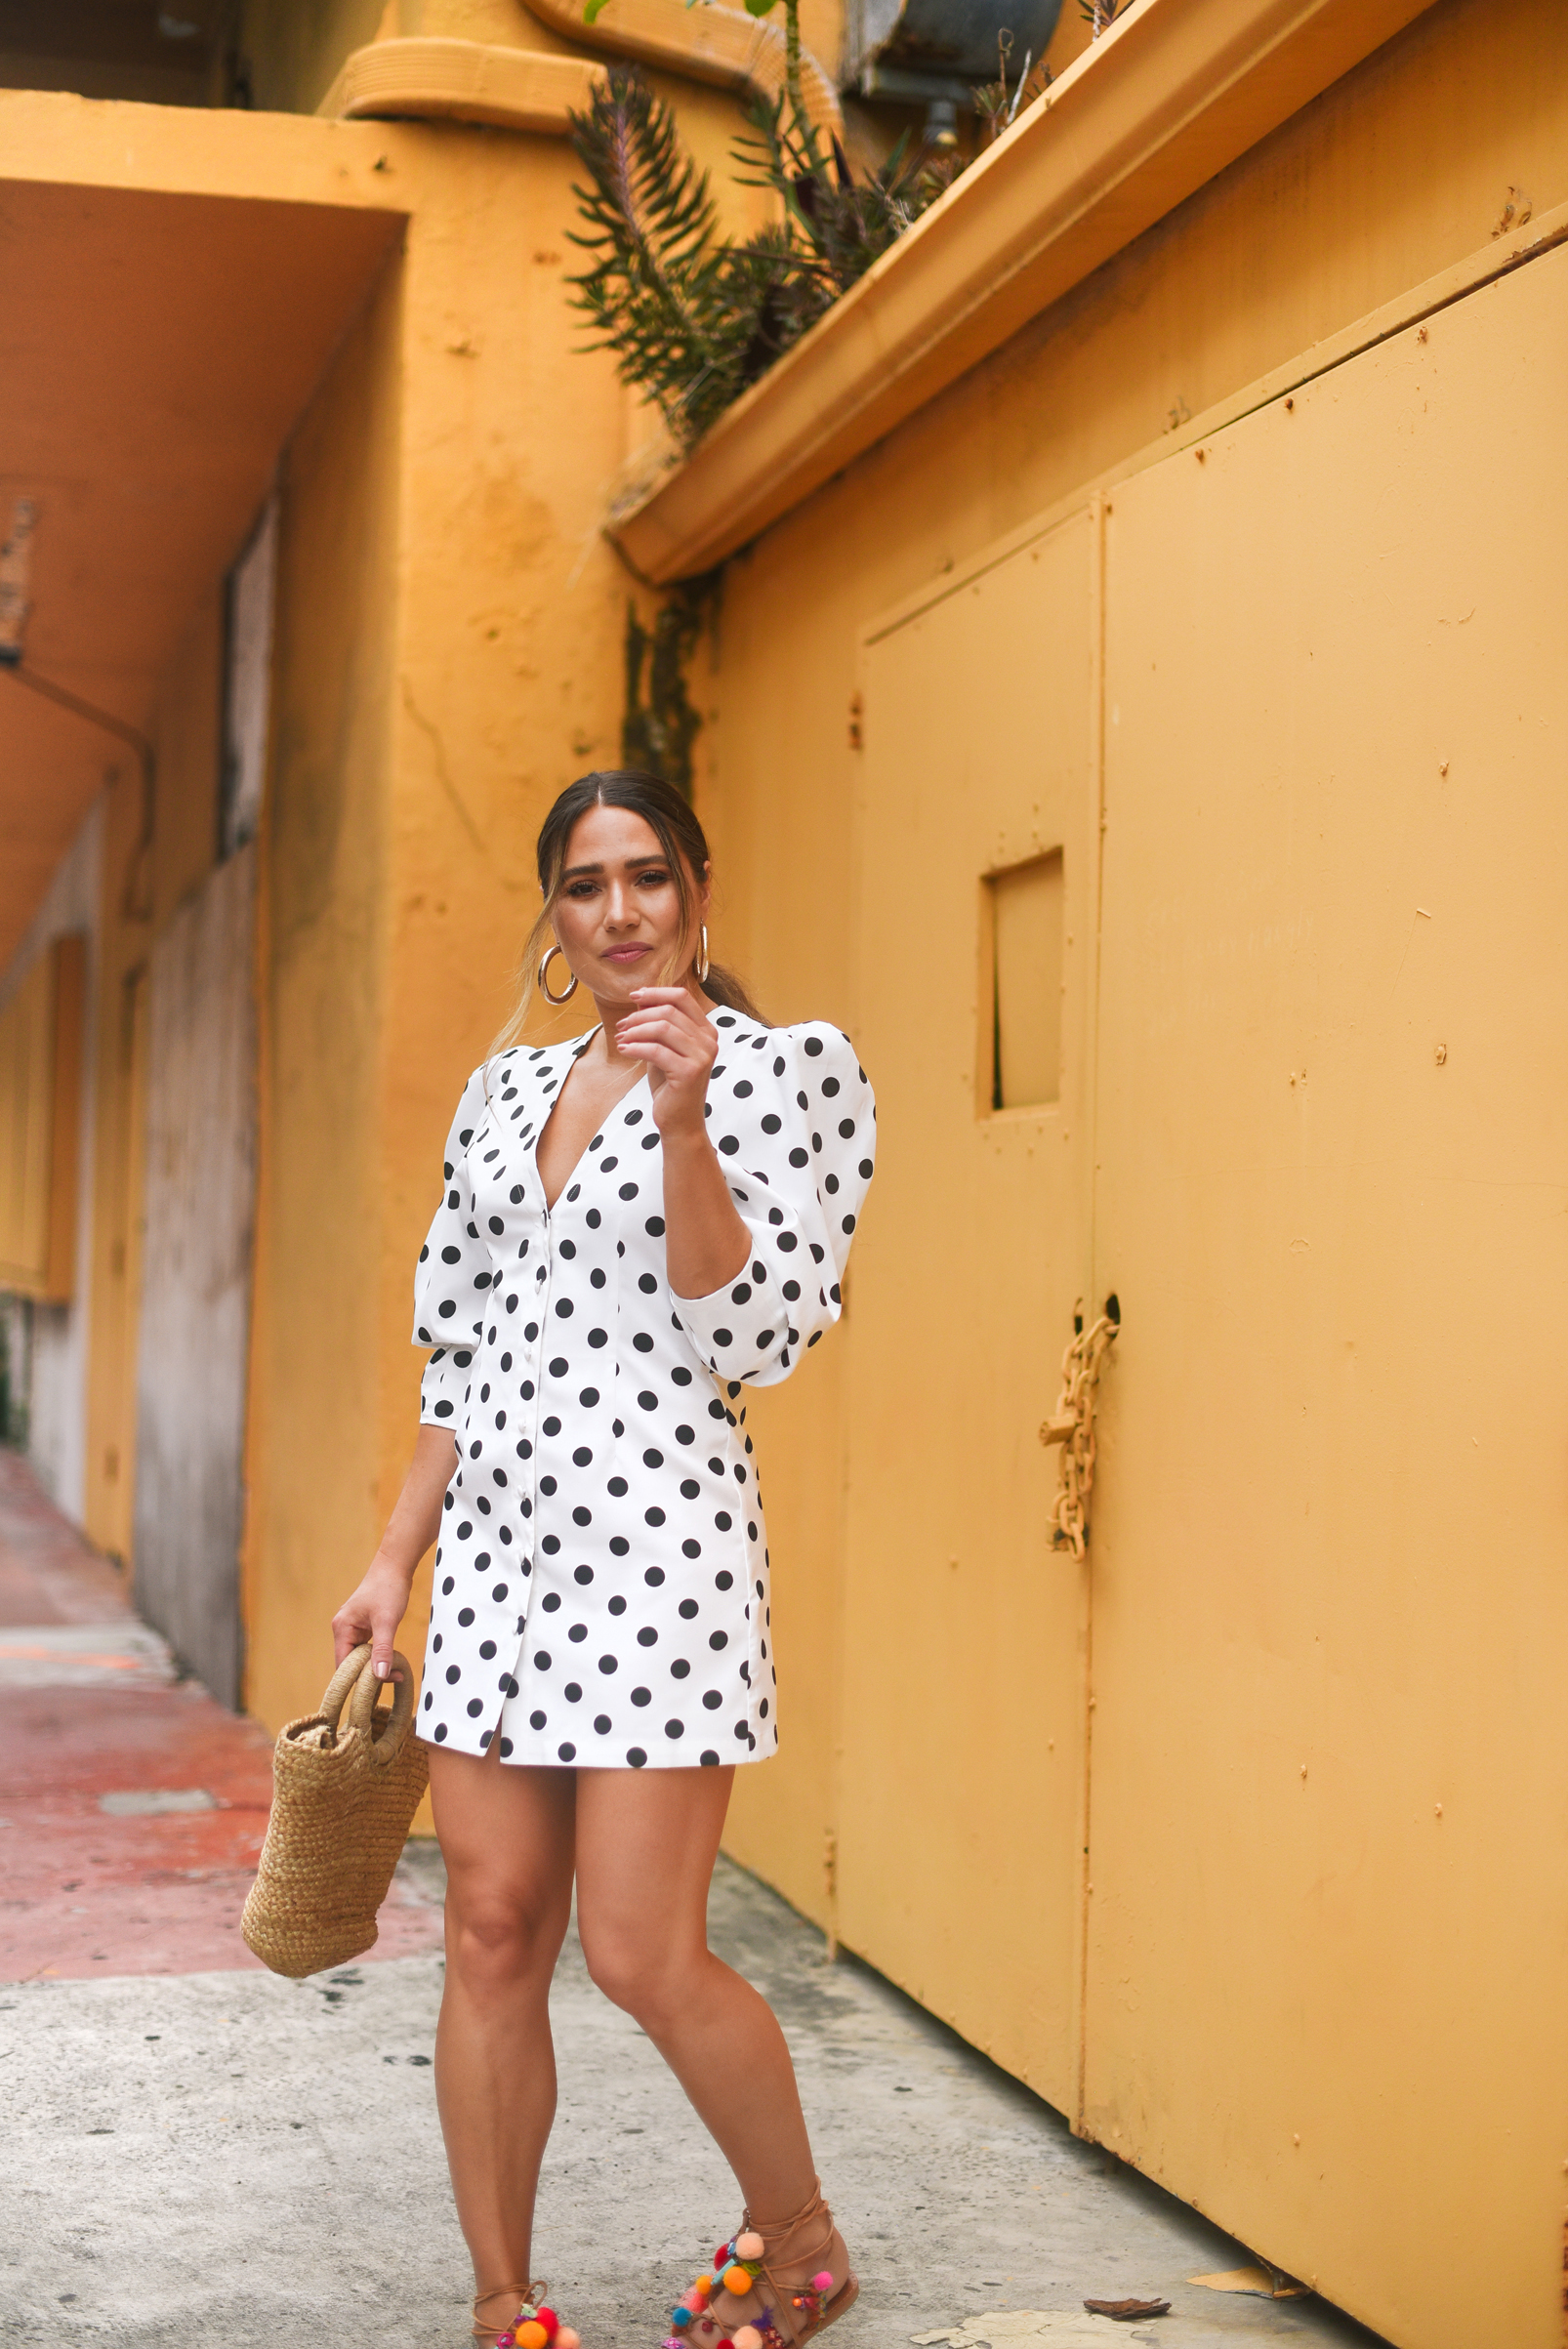 polka-dot-mini-dress-colorful-sandals-miami-street-style-look